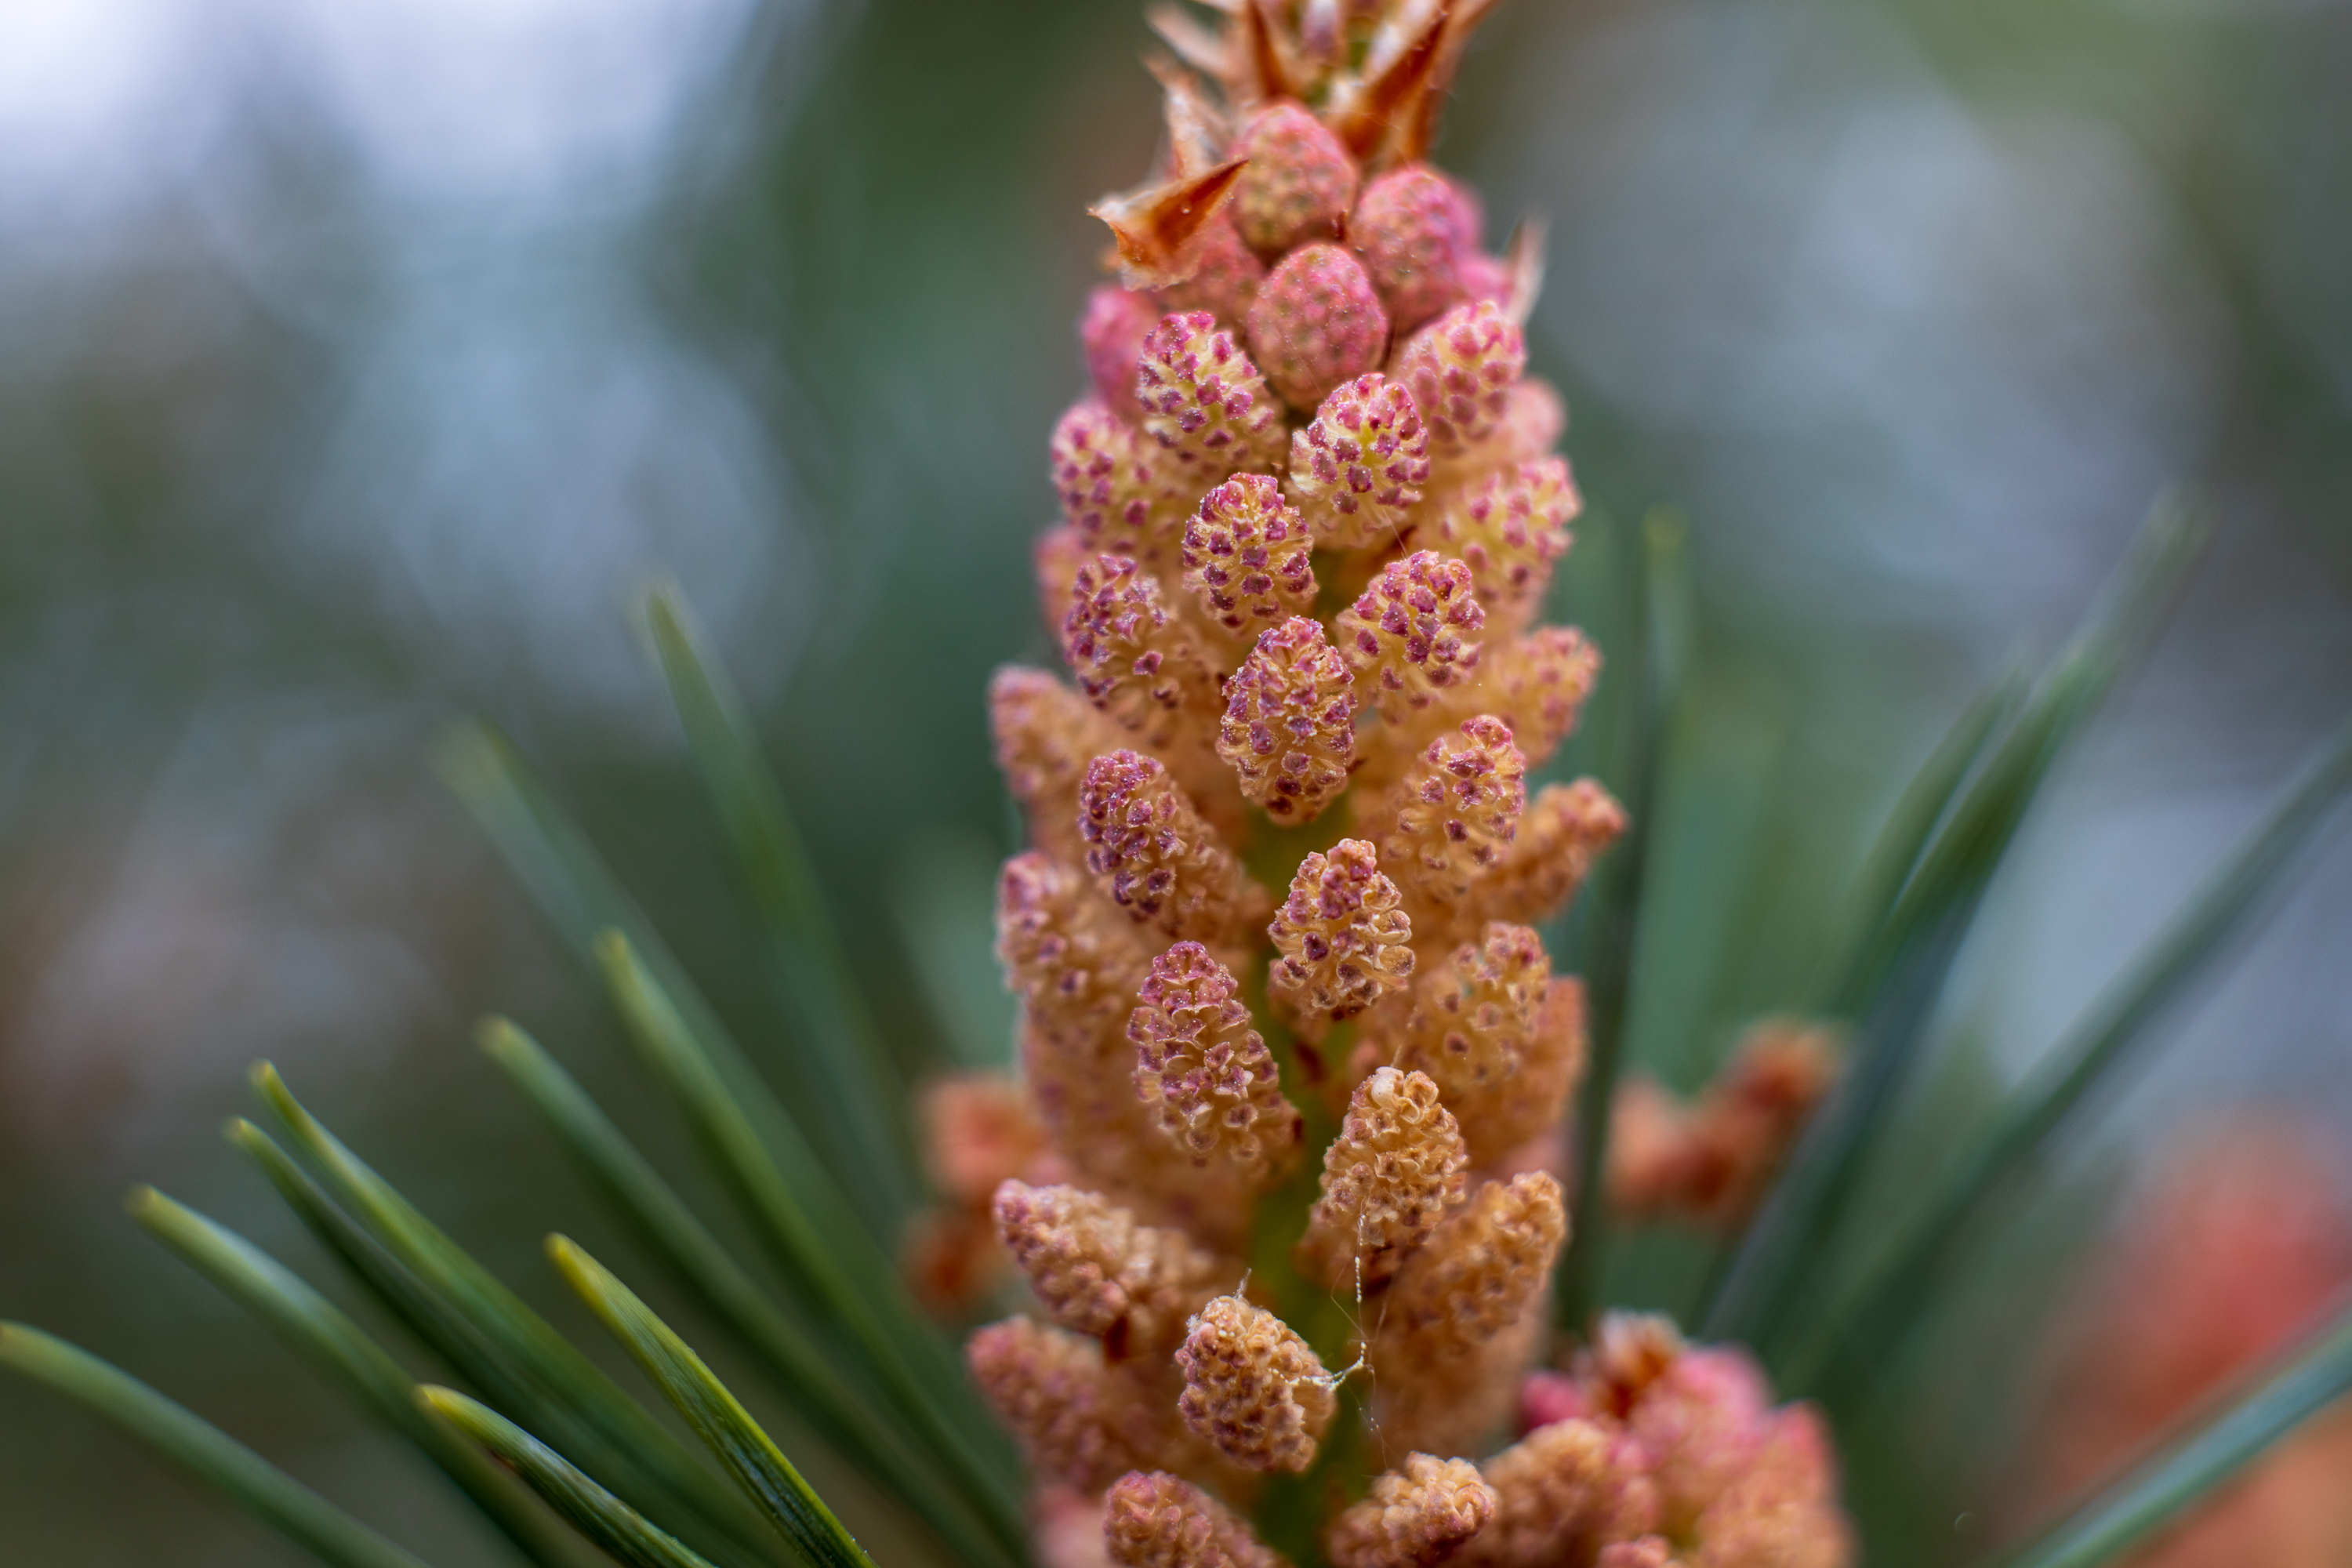 Pine bud with Mamiya Sekor 50mm f2 and extension helicoid